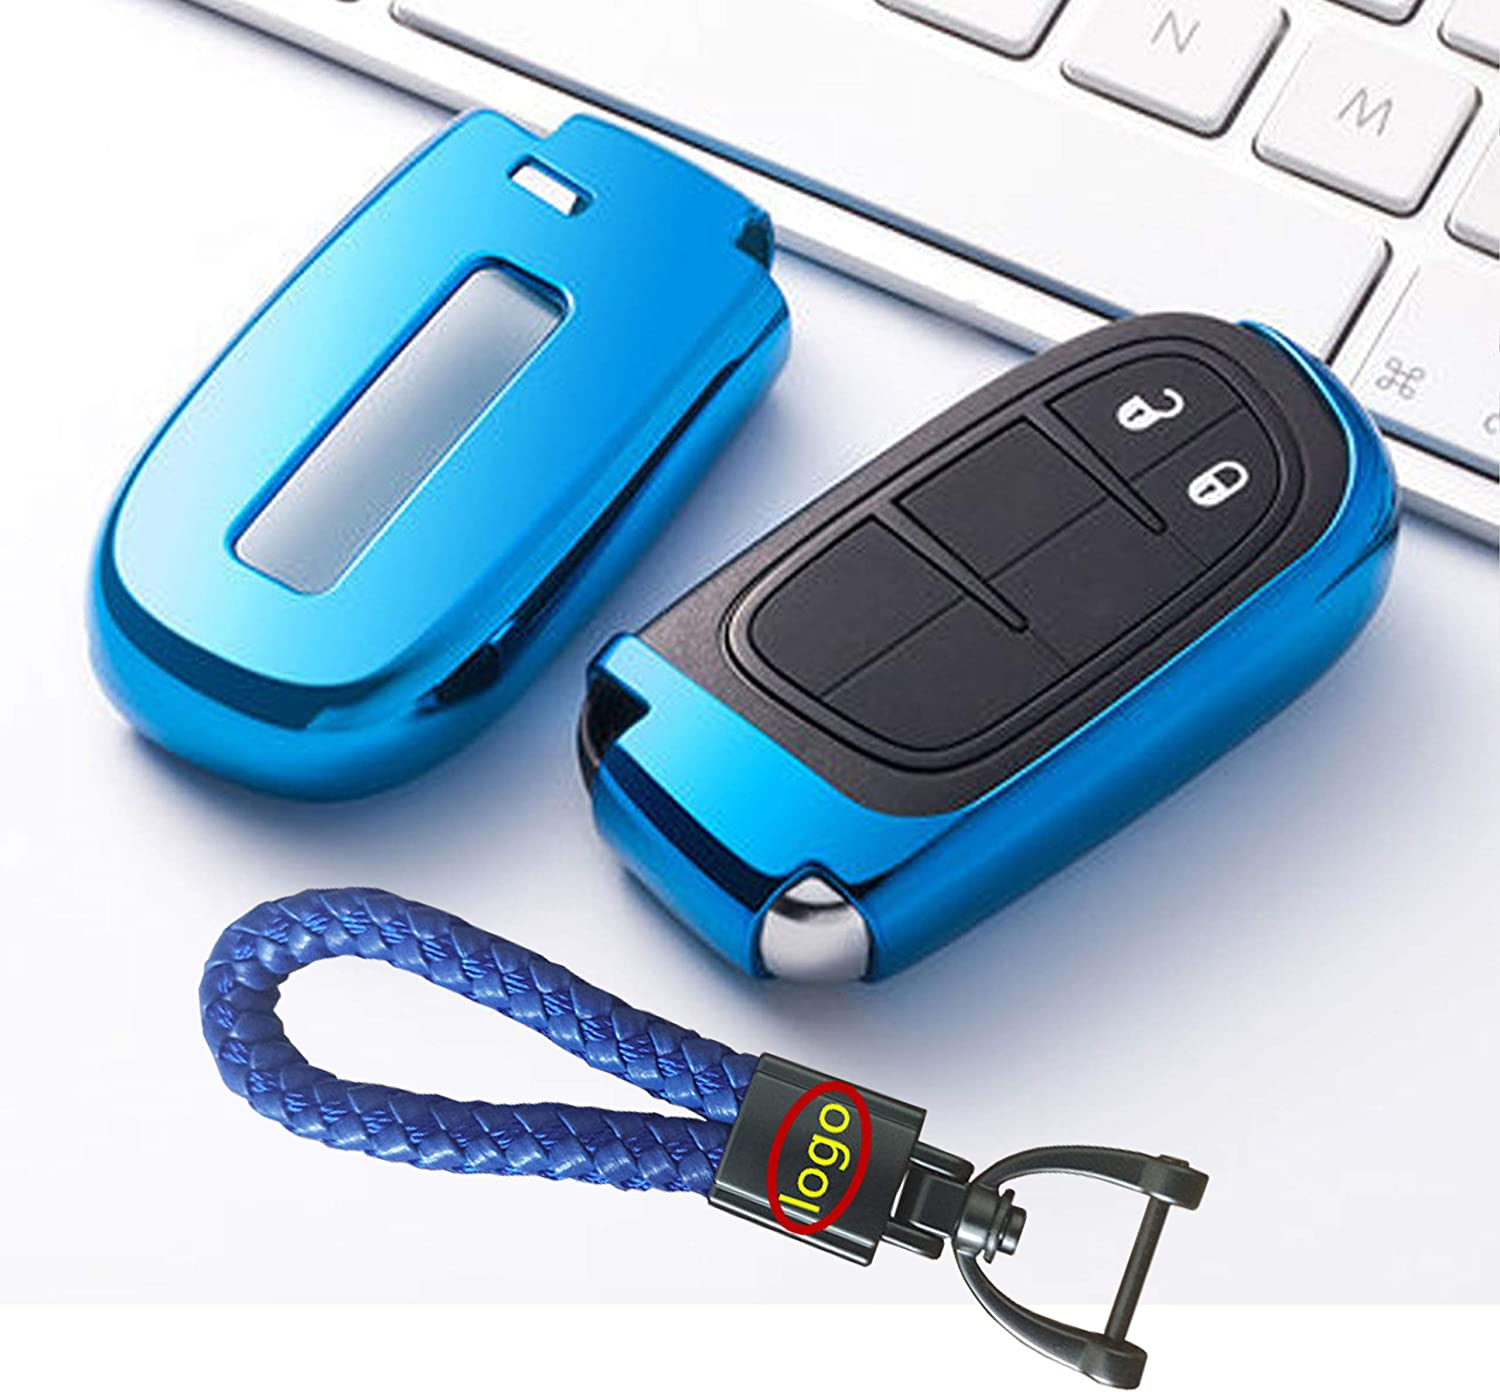 New Smart Keyless Entry Remote Key Shell Premium Soft TPU Half Cover Protection With Have Key Chain Fit For Jeep//Dodge//Chrysler